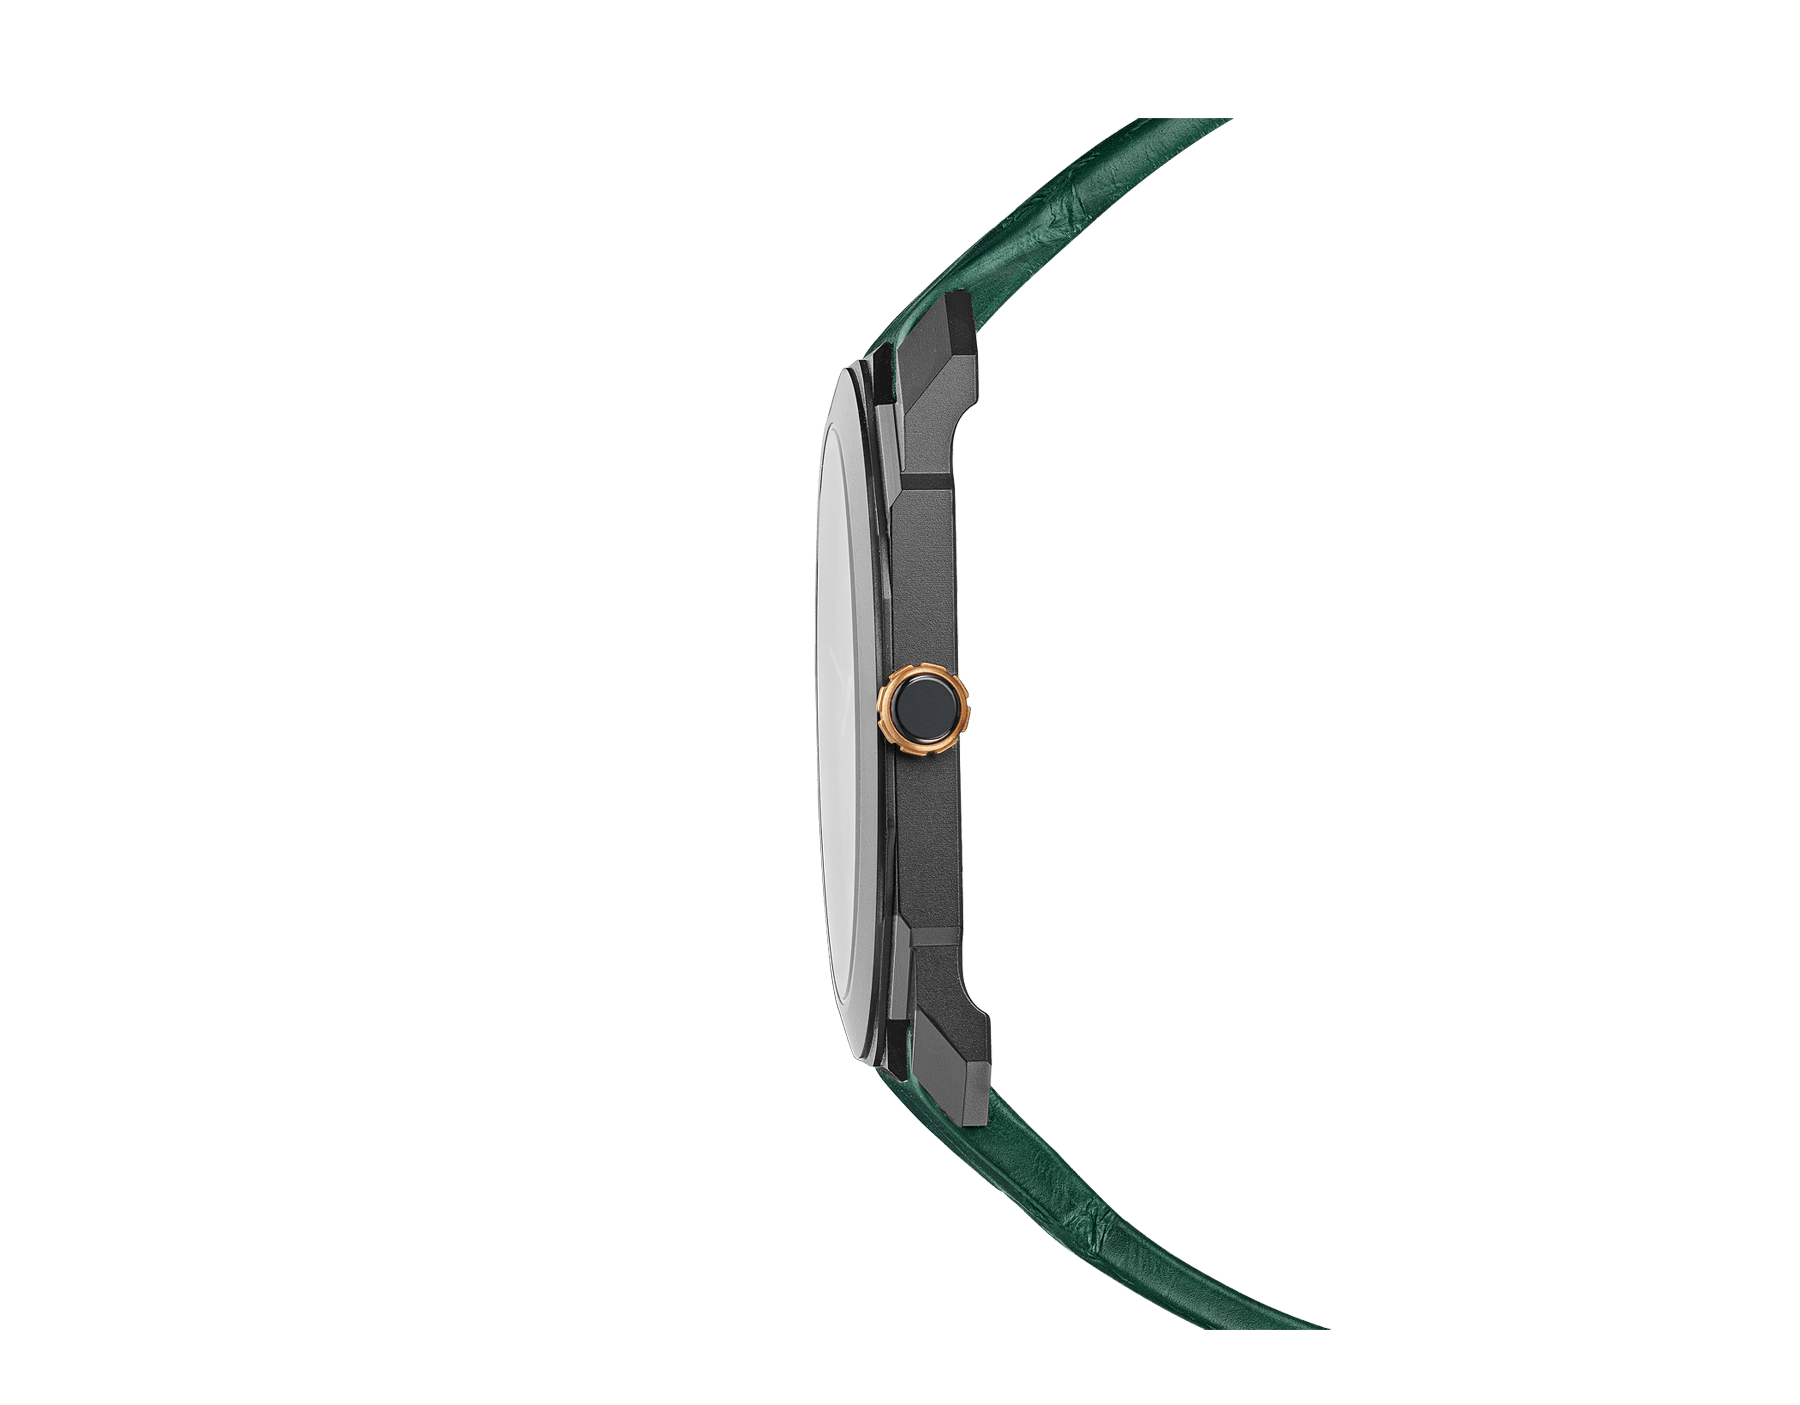 Octo Finissimo Automatic watch with extra-thin mechanical manufacture movement, automatic winding with platinum microrotor, small seconds, 40 mm titanium case with Diamond Like Carbon treatment, transparent case back, green dial and green alligator bracelet. Water-resistant up to 30 metres 103151 image 3